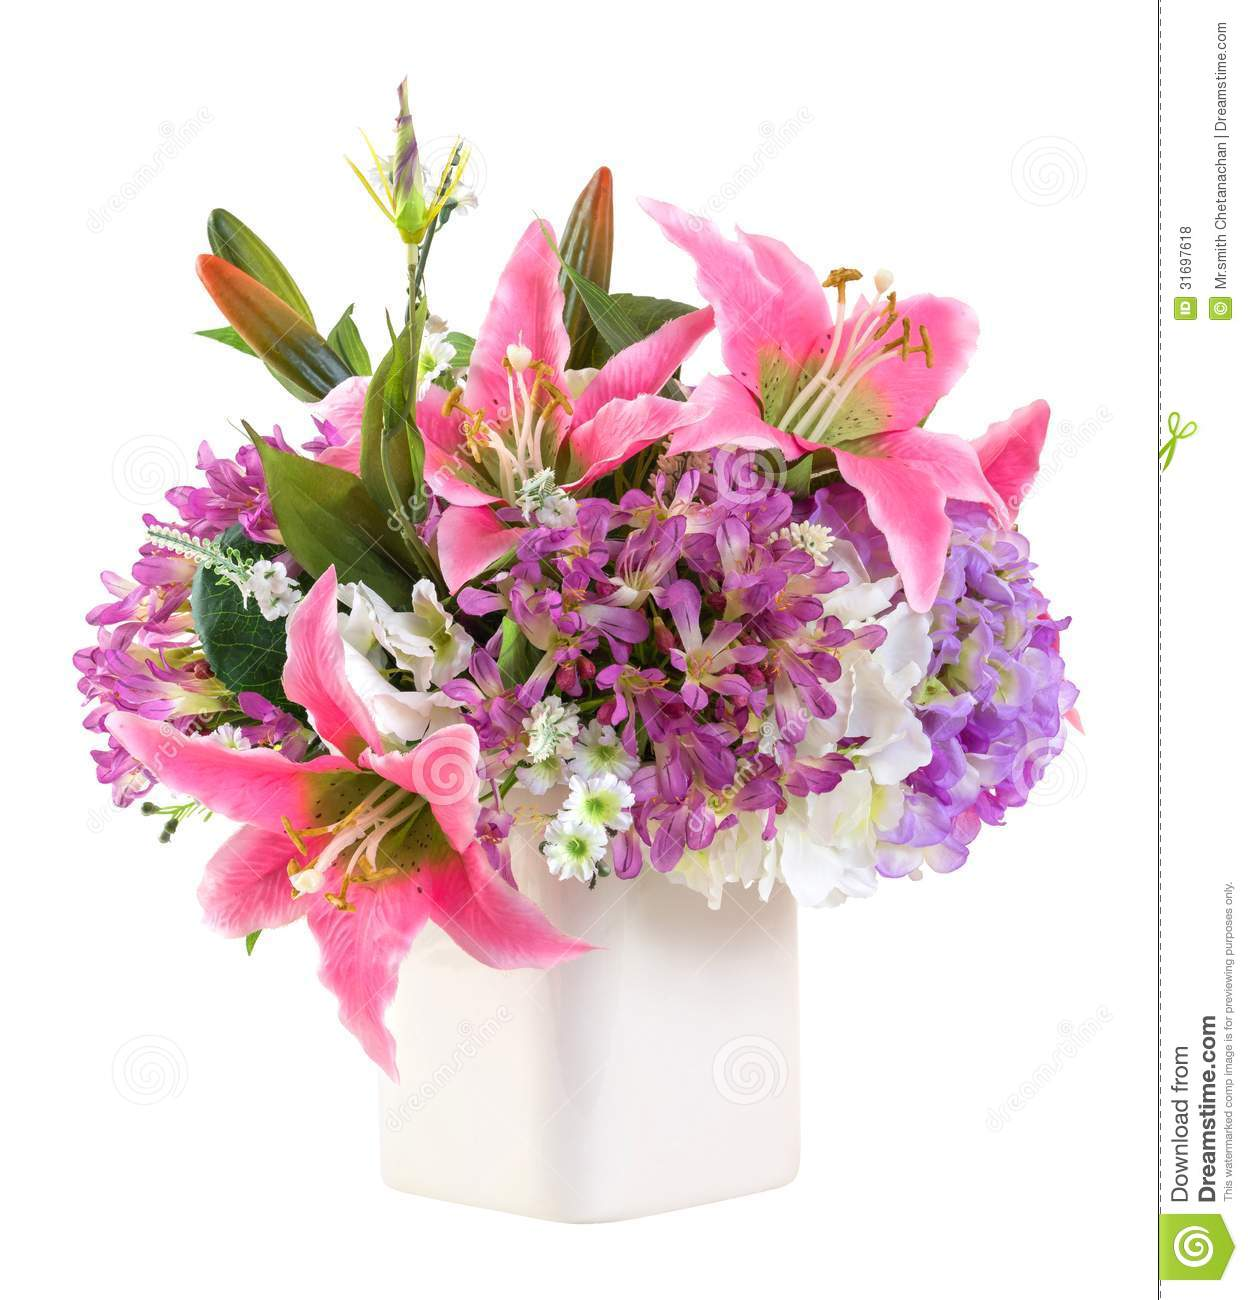 Flower Bouquet In White Ceramic Pot Stock Photo Image Of Leaf